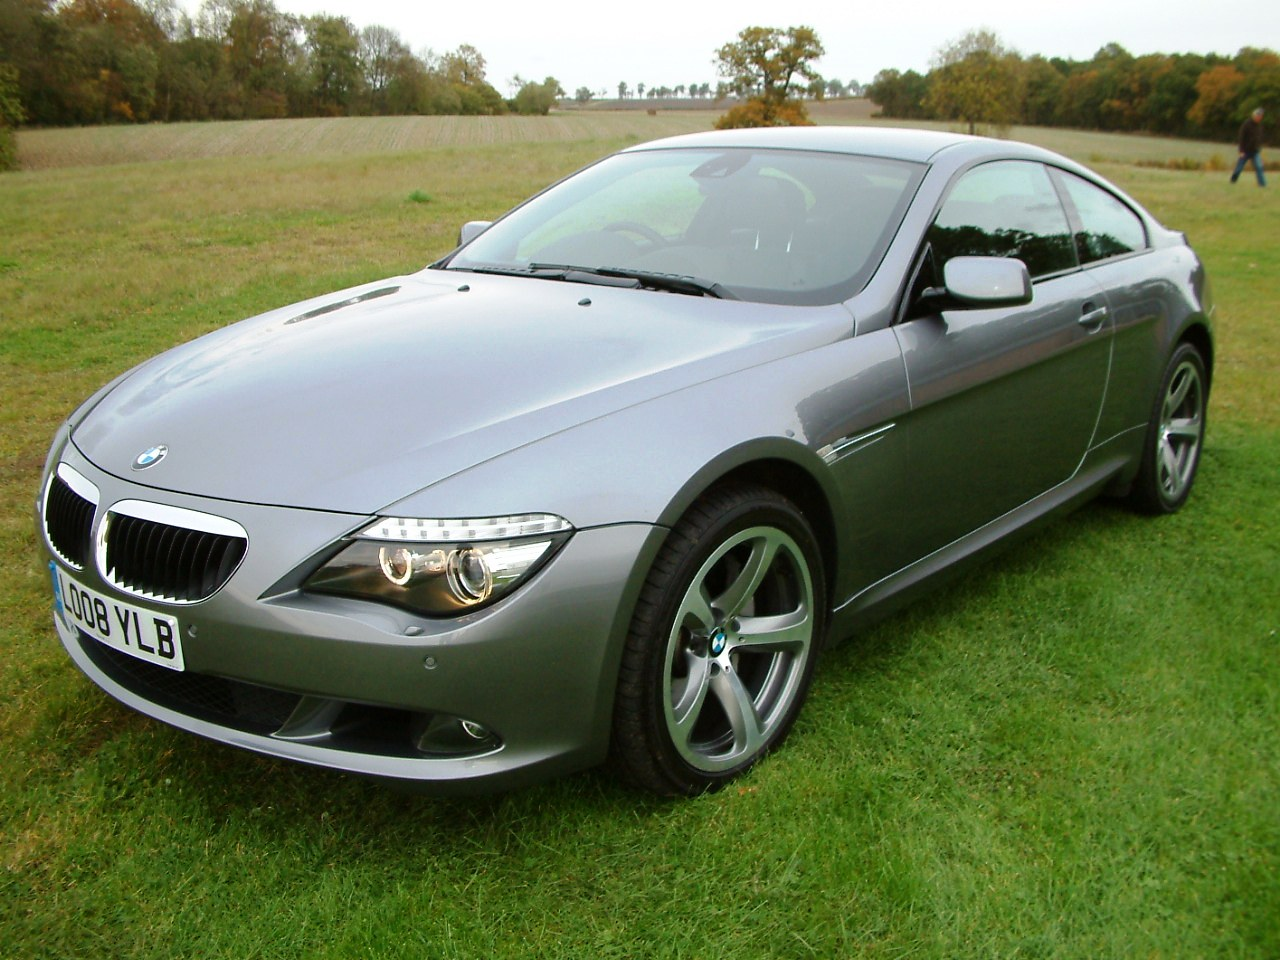 BMW 635d 2008: Review, Amazing Pictures and Images – Look at the car